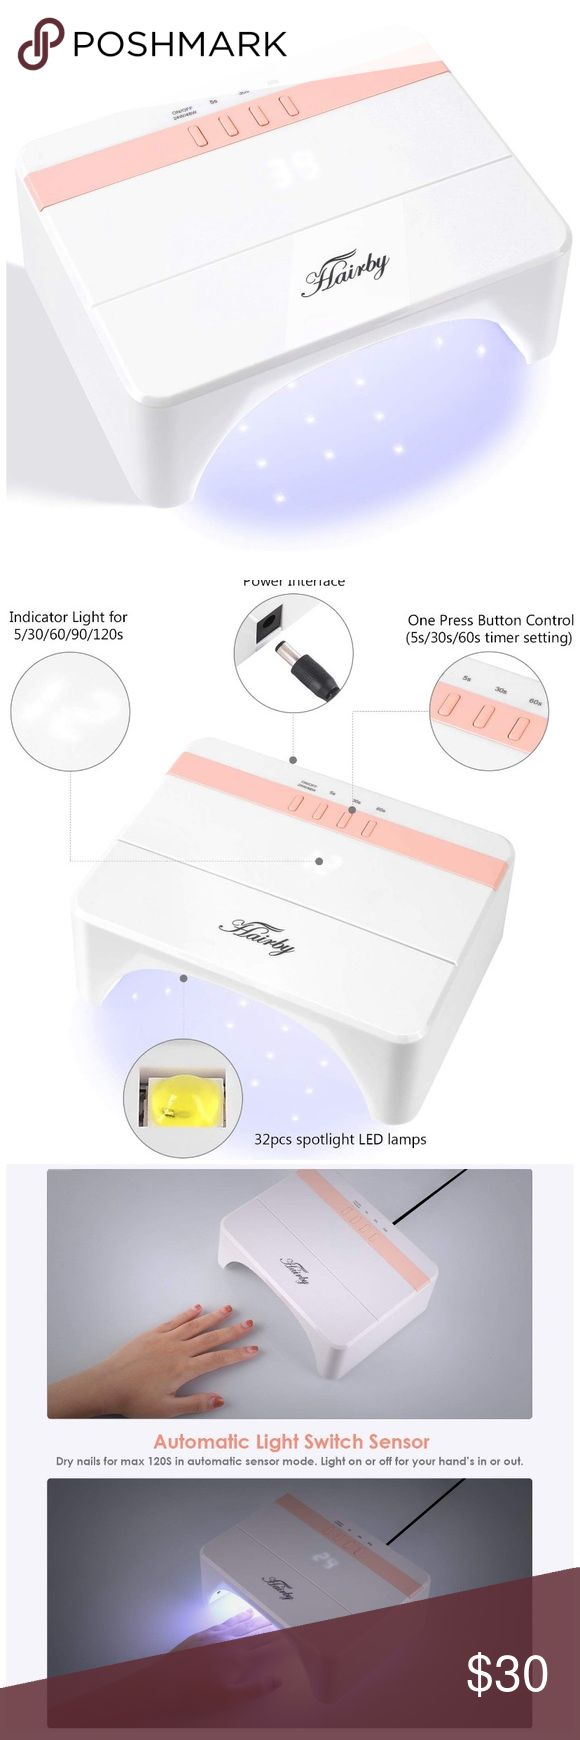 Nail Dryer 48W UV Light LED, 5-120s 5 Timers ❤ DELICATE AND FASHION FOR NAIL S… Nail Dryer 48W UV Light LED, 5-120s 5 Timers ❤ DELICATE AND FASHION FOR NAIL SALON – Rectangular nail gel dryer, with smooth and durable polyster material, protect the nail dryer from deformation and damage. Portable size makes it easier to beautify your nails when go working, gathering or shopping. ❤ FAST CRUEING NIAL WITH 48W POWER – 30 pcs LED lamps fixed in the inner wall of dryer, provides high efficient curing and polishing. Save you time to dress up manicure, to enjoy different nails types in different moods anytime anywhere. Nail Makeup